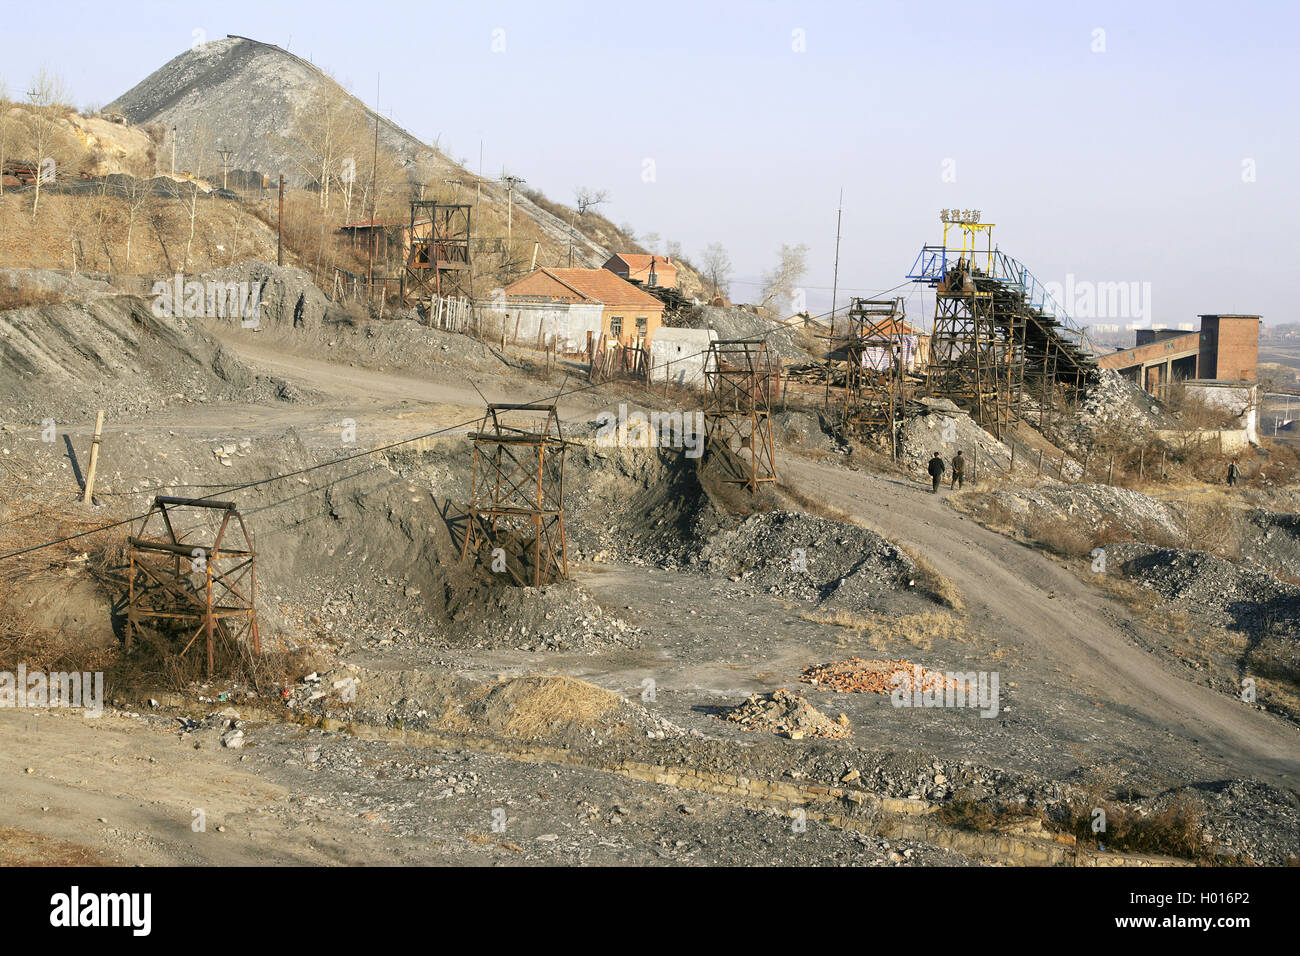 A scene on the Lixin Coal Company, Jixi in November 2007 Stock Photo